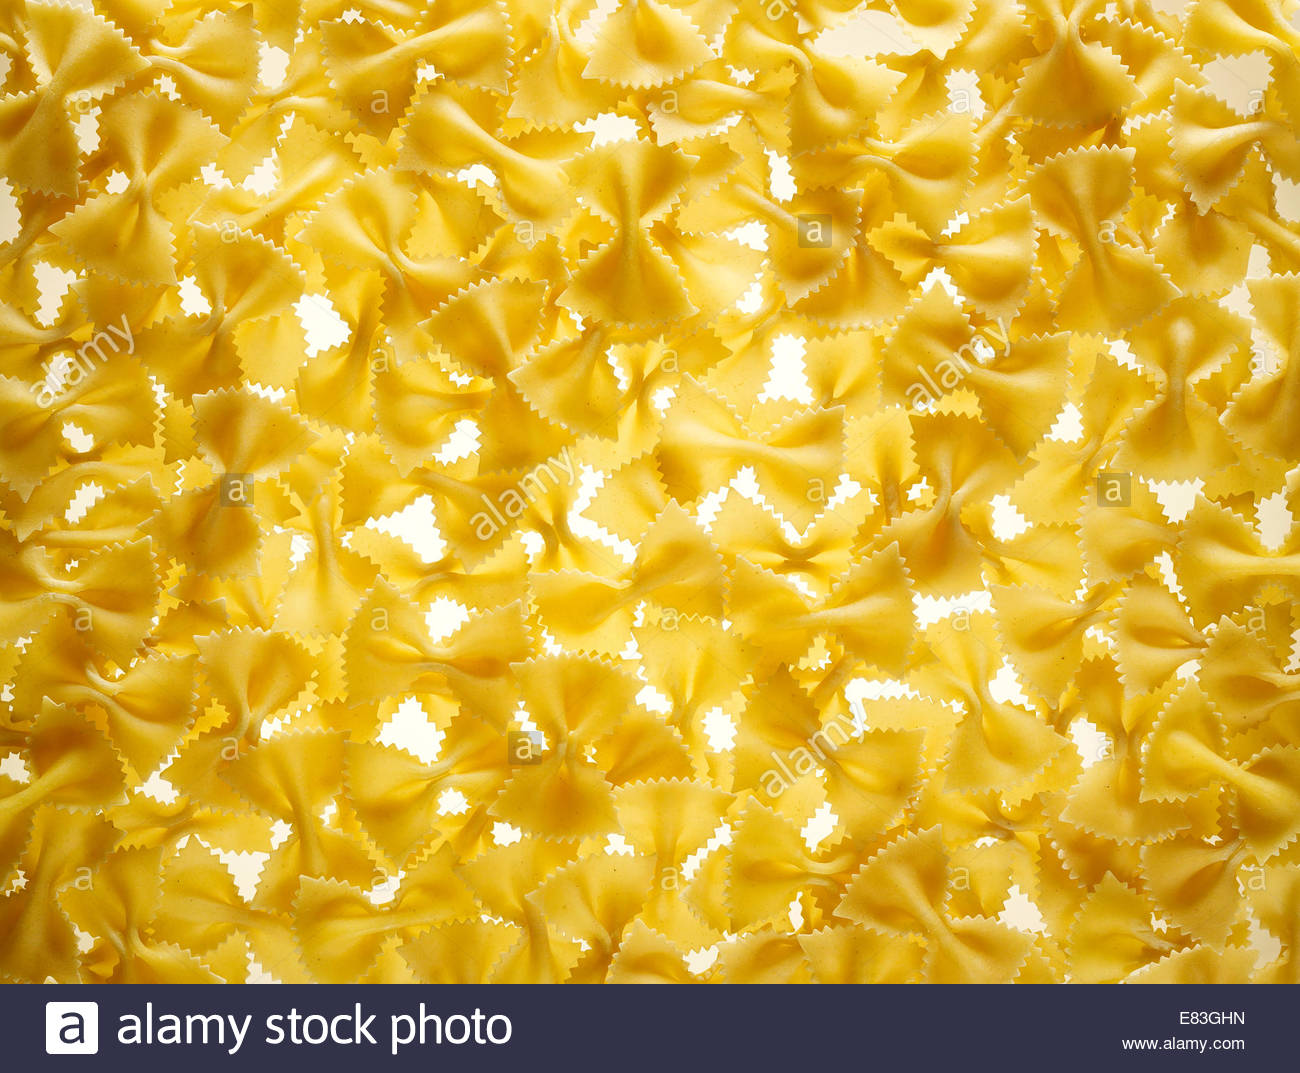 Background image of traditional Italian uncooked Bowtie Pasta - Stock Image